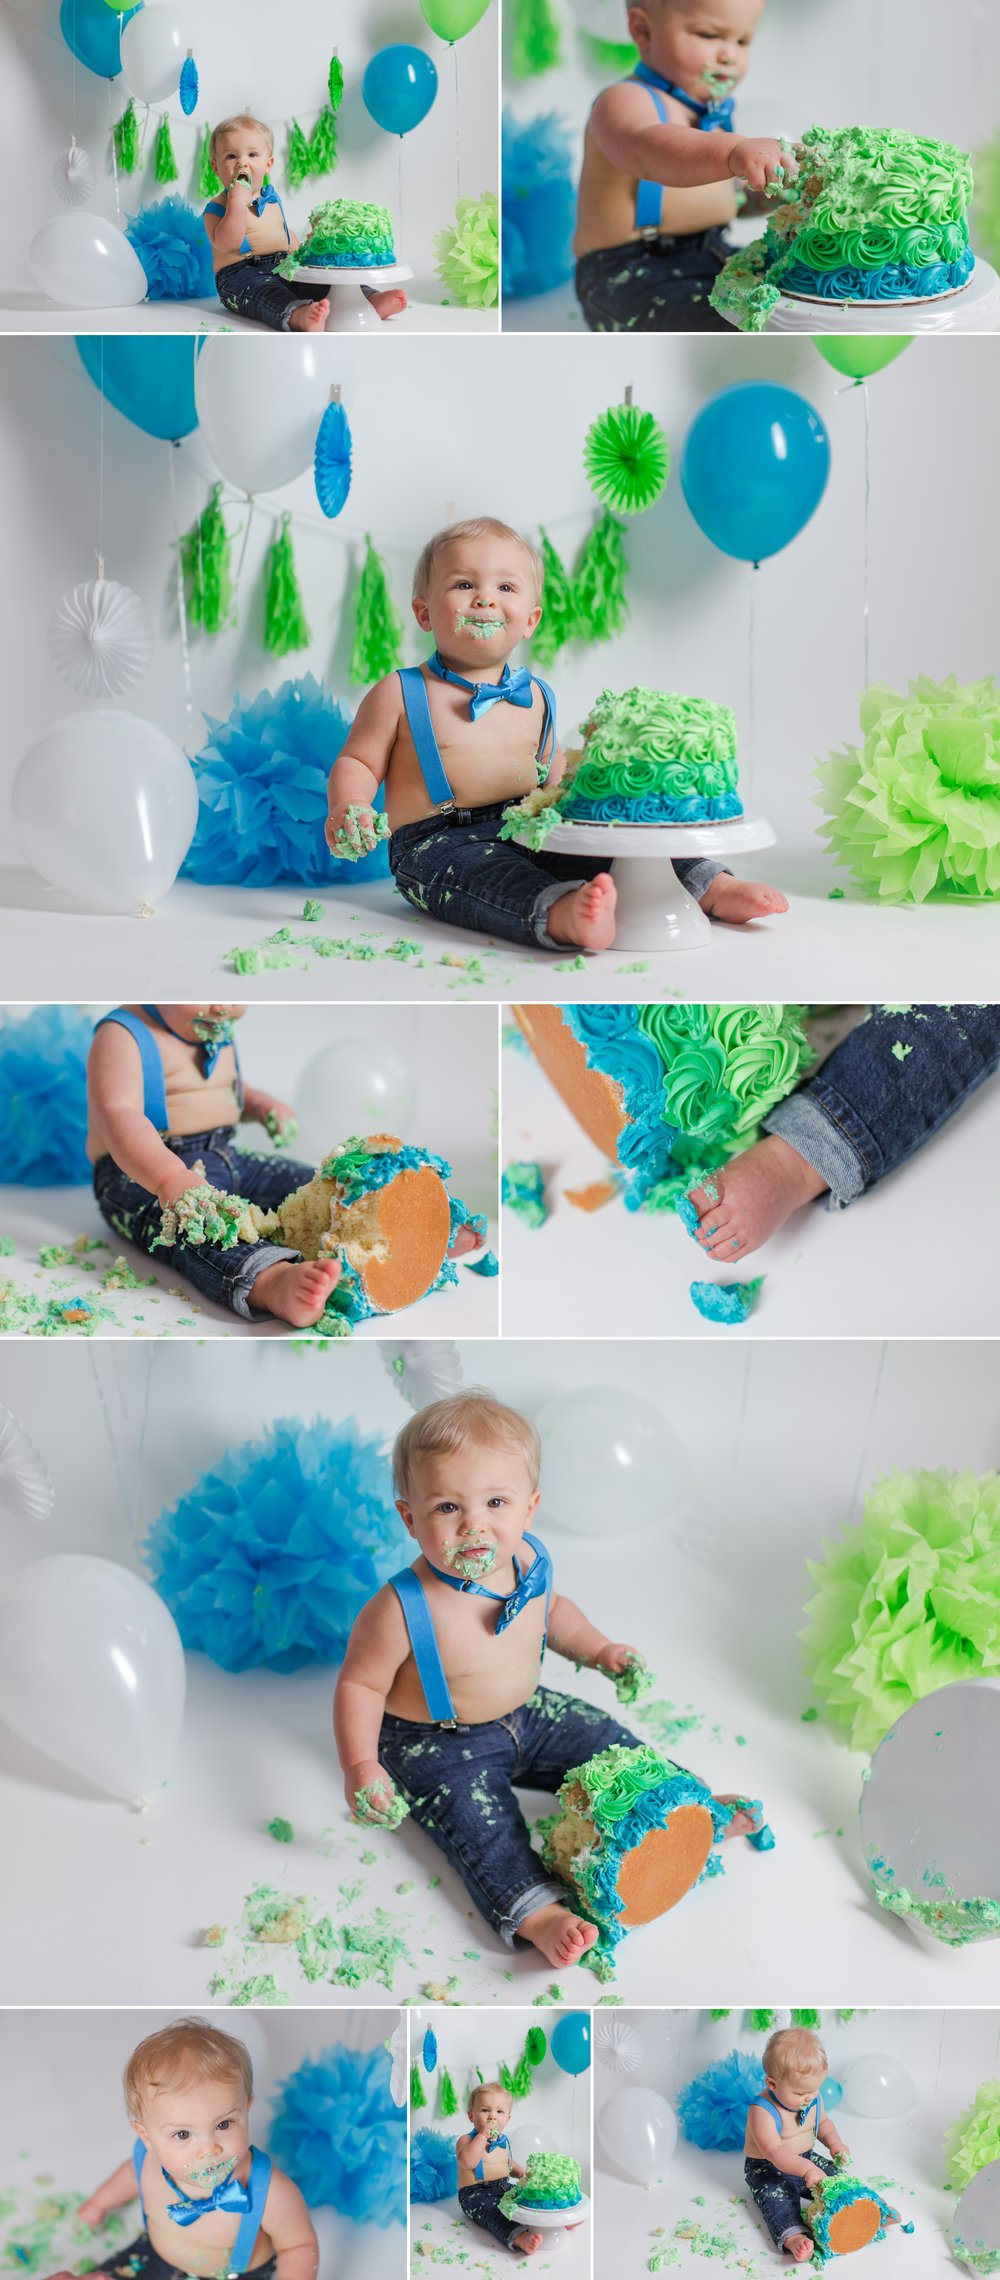 boy_bright_colors_cake_smash_photography_lime_blue_balloons_white_backdrop_ideas_vibrant_decor_ideas